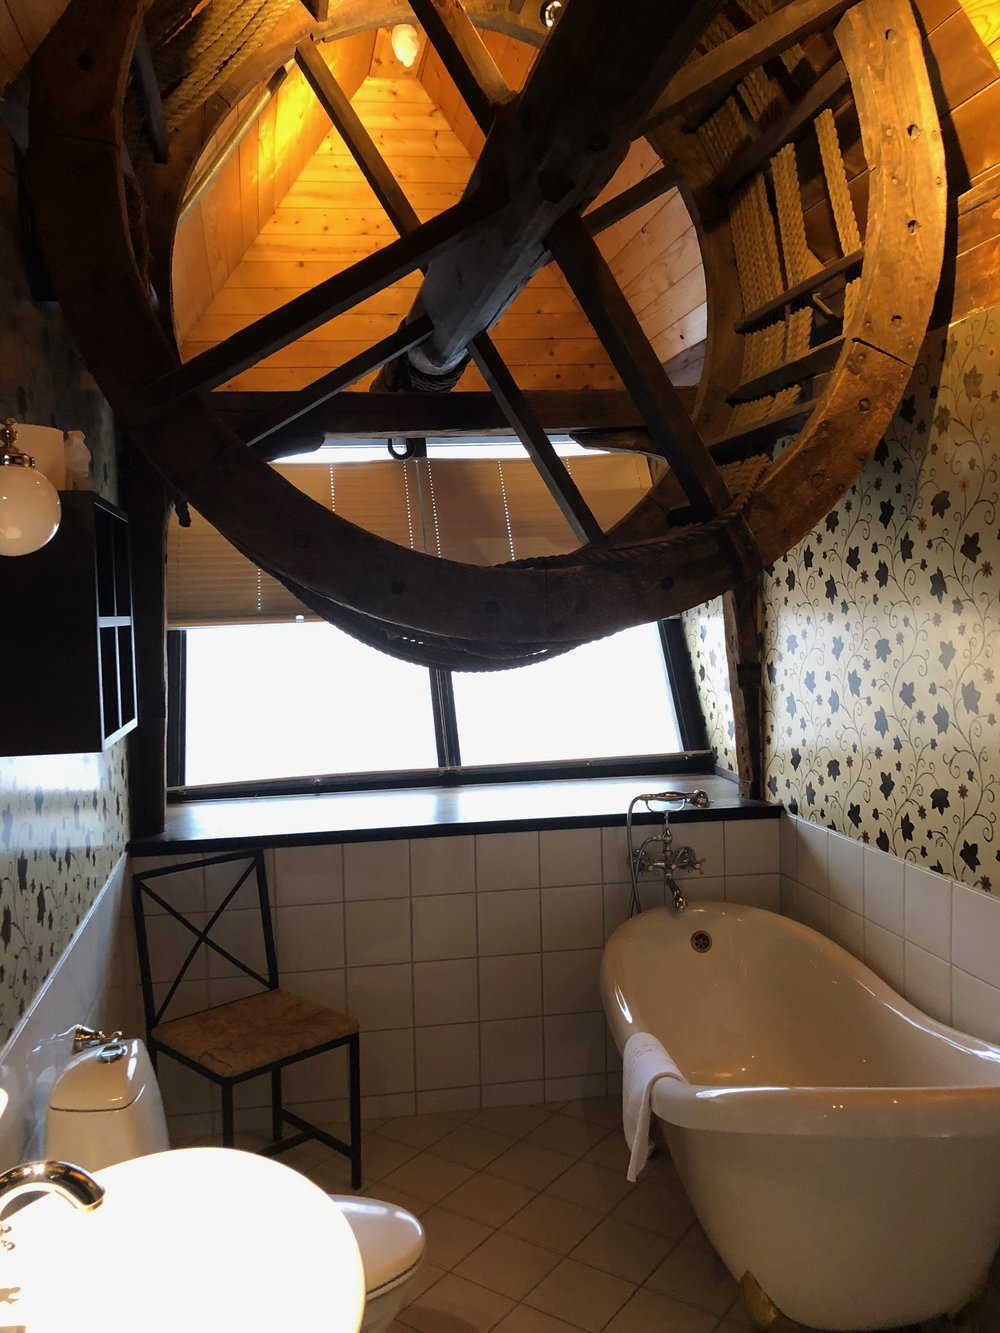 We stay one night at a  hotel  in the German Hanseatic district of Bergen, rebuilt in the early 1700s after a fire destroyed the original buildings. Above the bathtub is all that remains of an old hoist once used to pull cargo up to the storage rooms in the attic of this building.